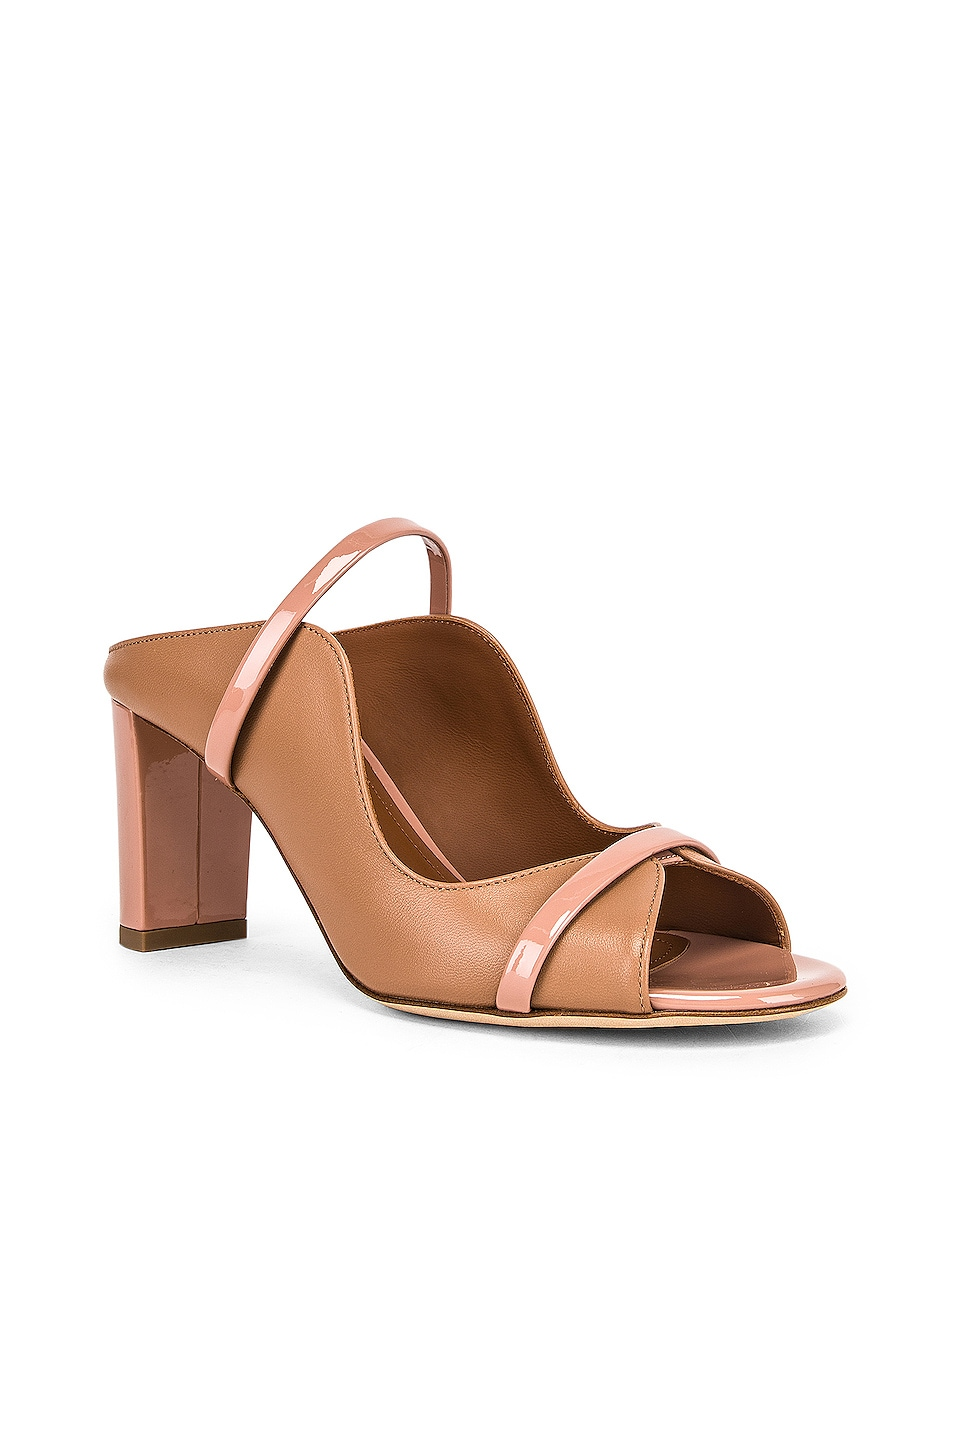 Image 2 of Malone Souliers Nora Heel in Nude & Blush